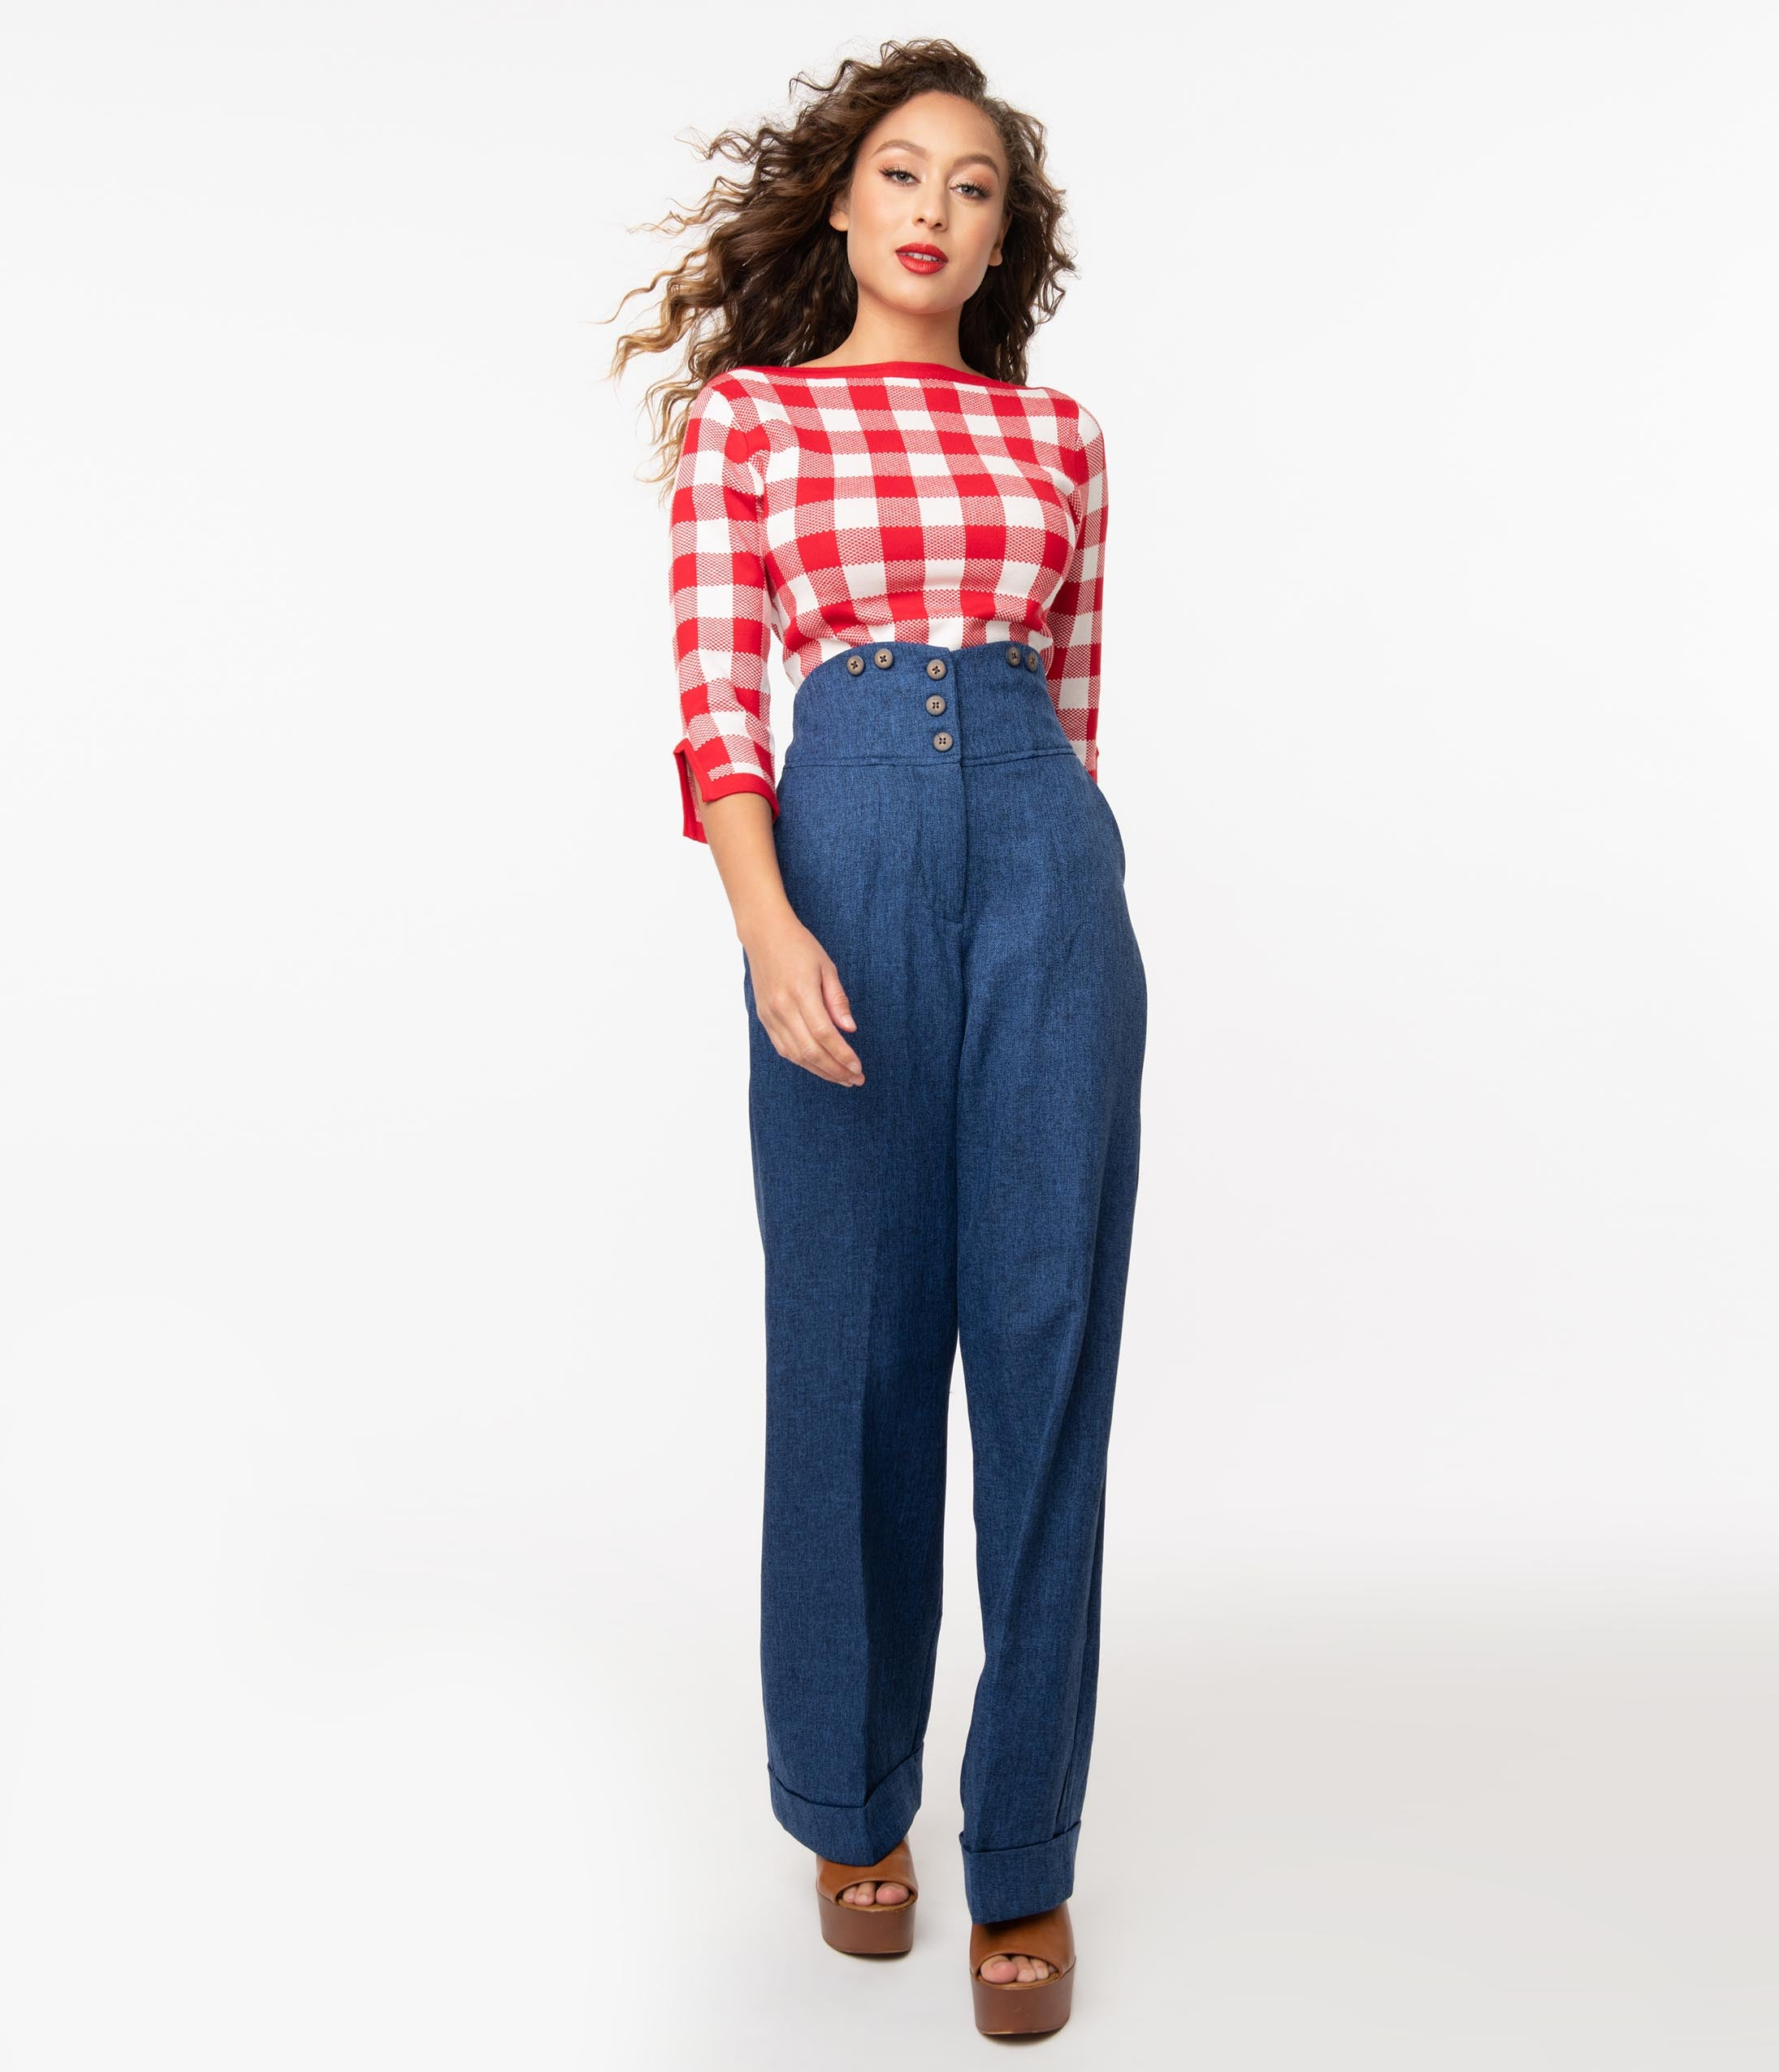 Vintage High Waisted Trousers, Sailor Pants, Jeans 1950S Style Blue High Waist Pants $58.00 AT vintagedancer.com